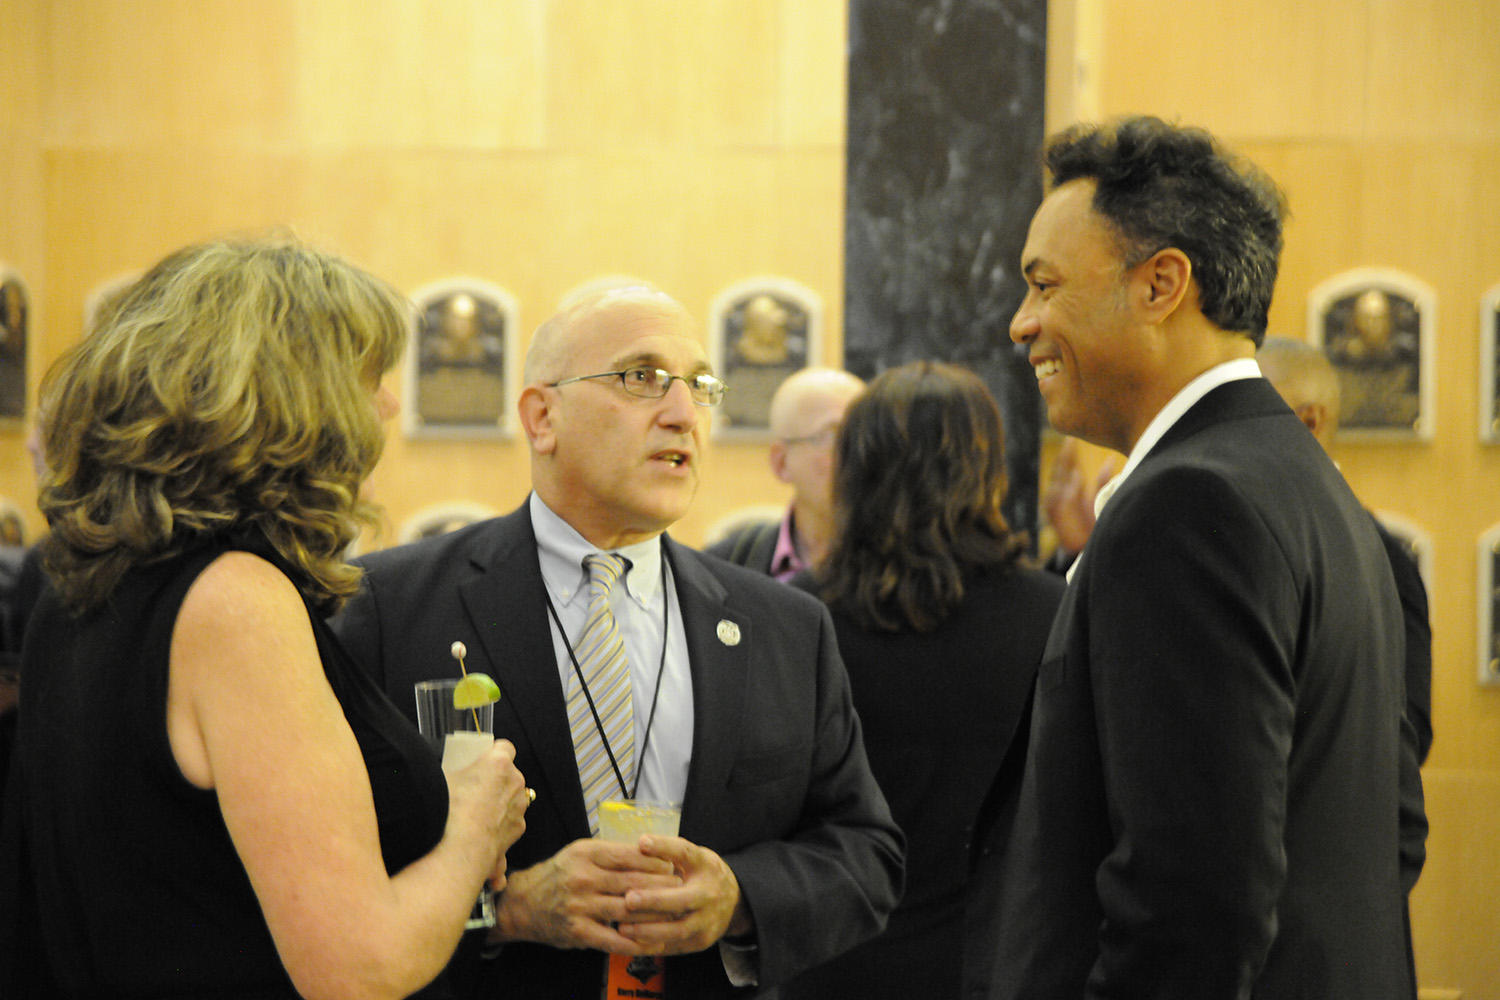 Kerry DeMarco and his girlfriend Colleen Kerr chat with Hall of Famer Roberto Alomar following the 2014 Cooperstown Golf Classic. (Milo Stewart Jr. / National Baseball Hall of Fame and Museum)